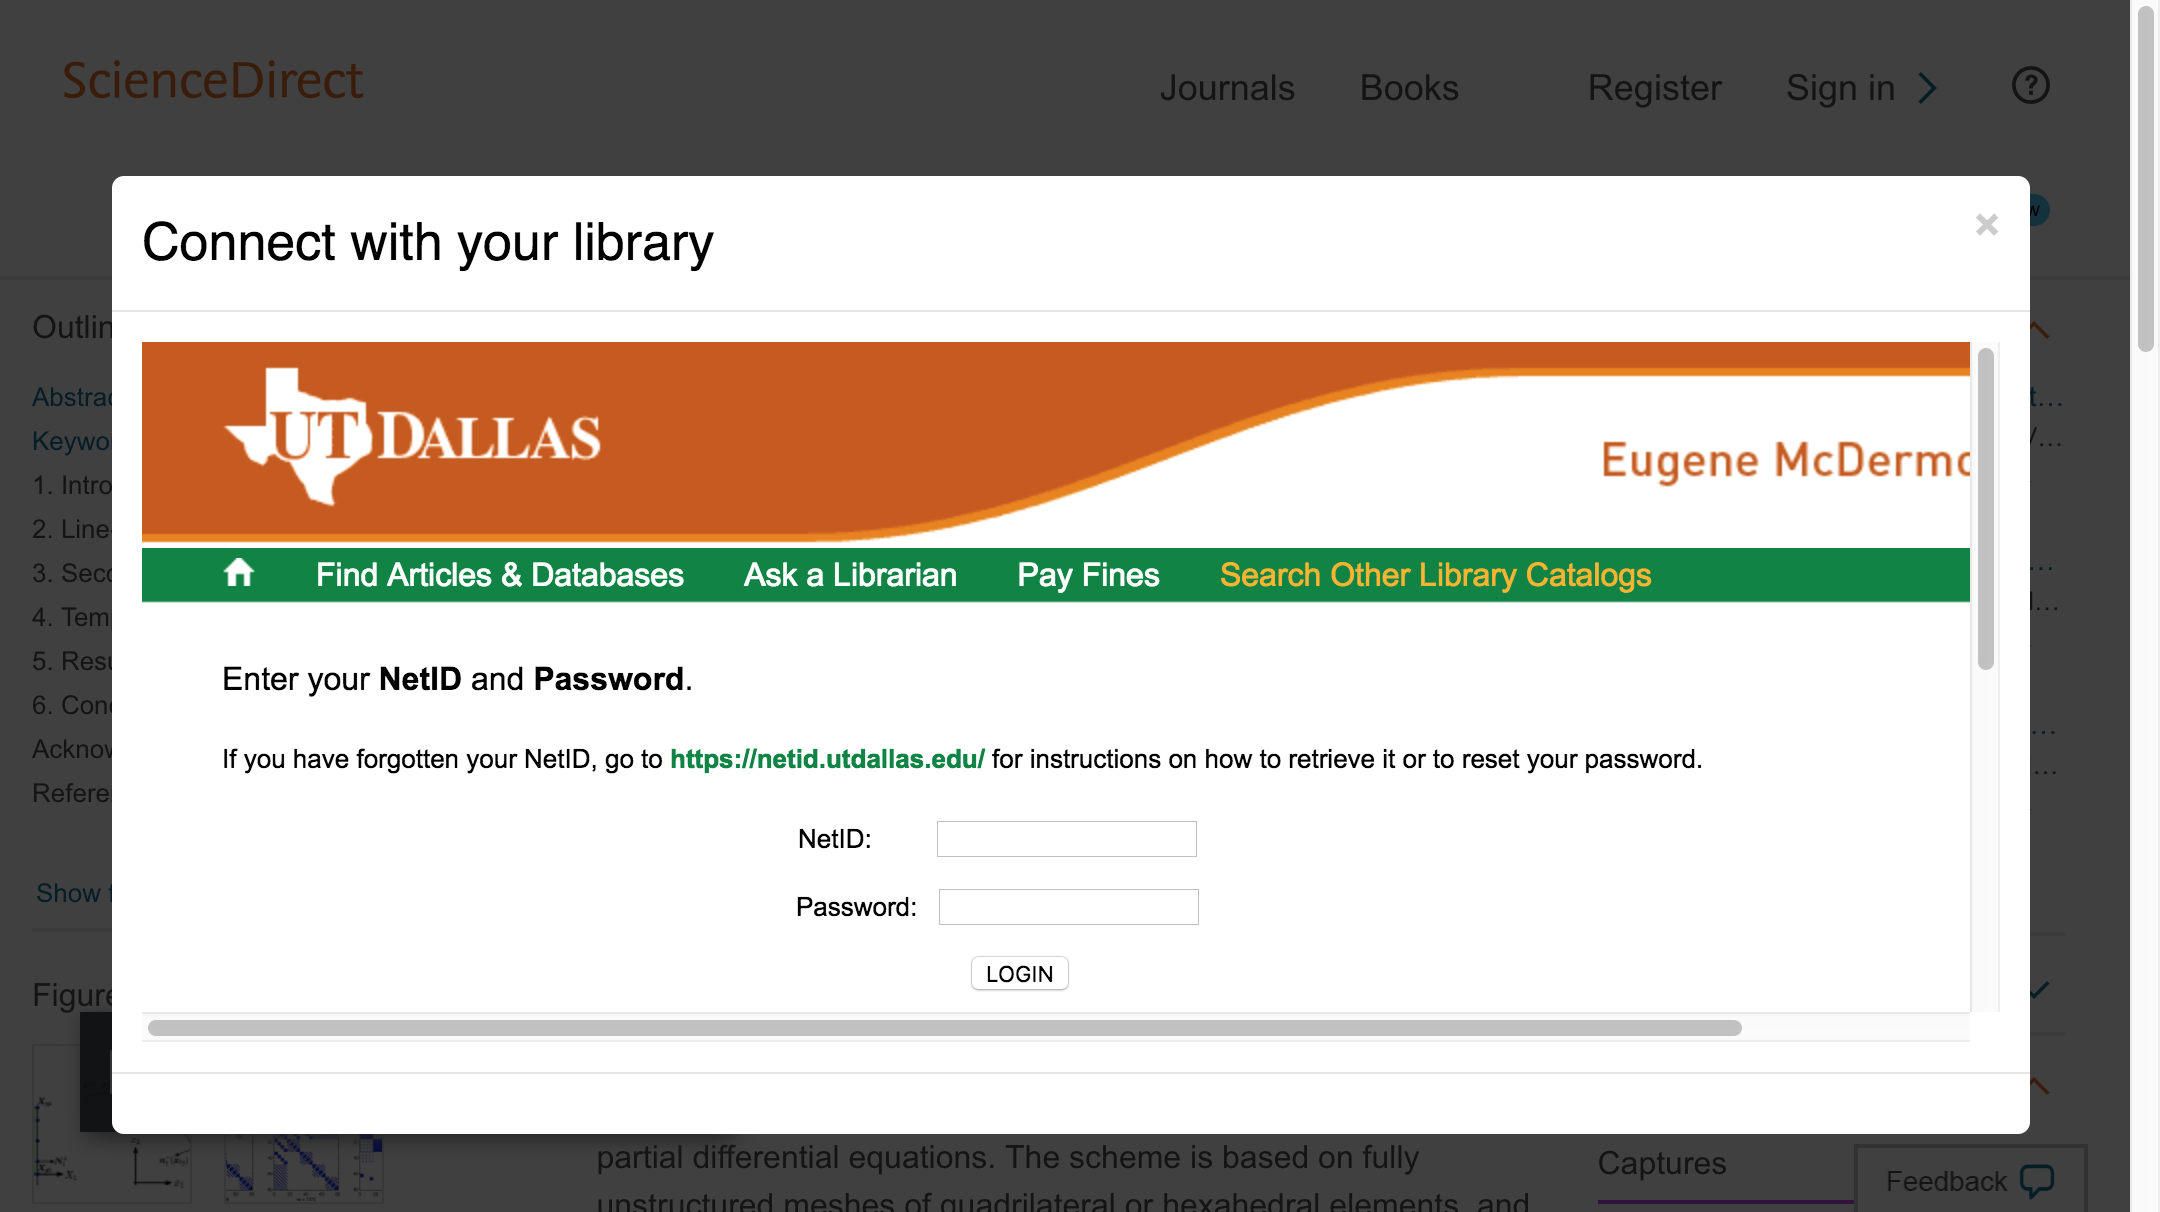 Enter University of Texas at Dallas credentials to access journal subscriptions.